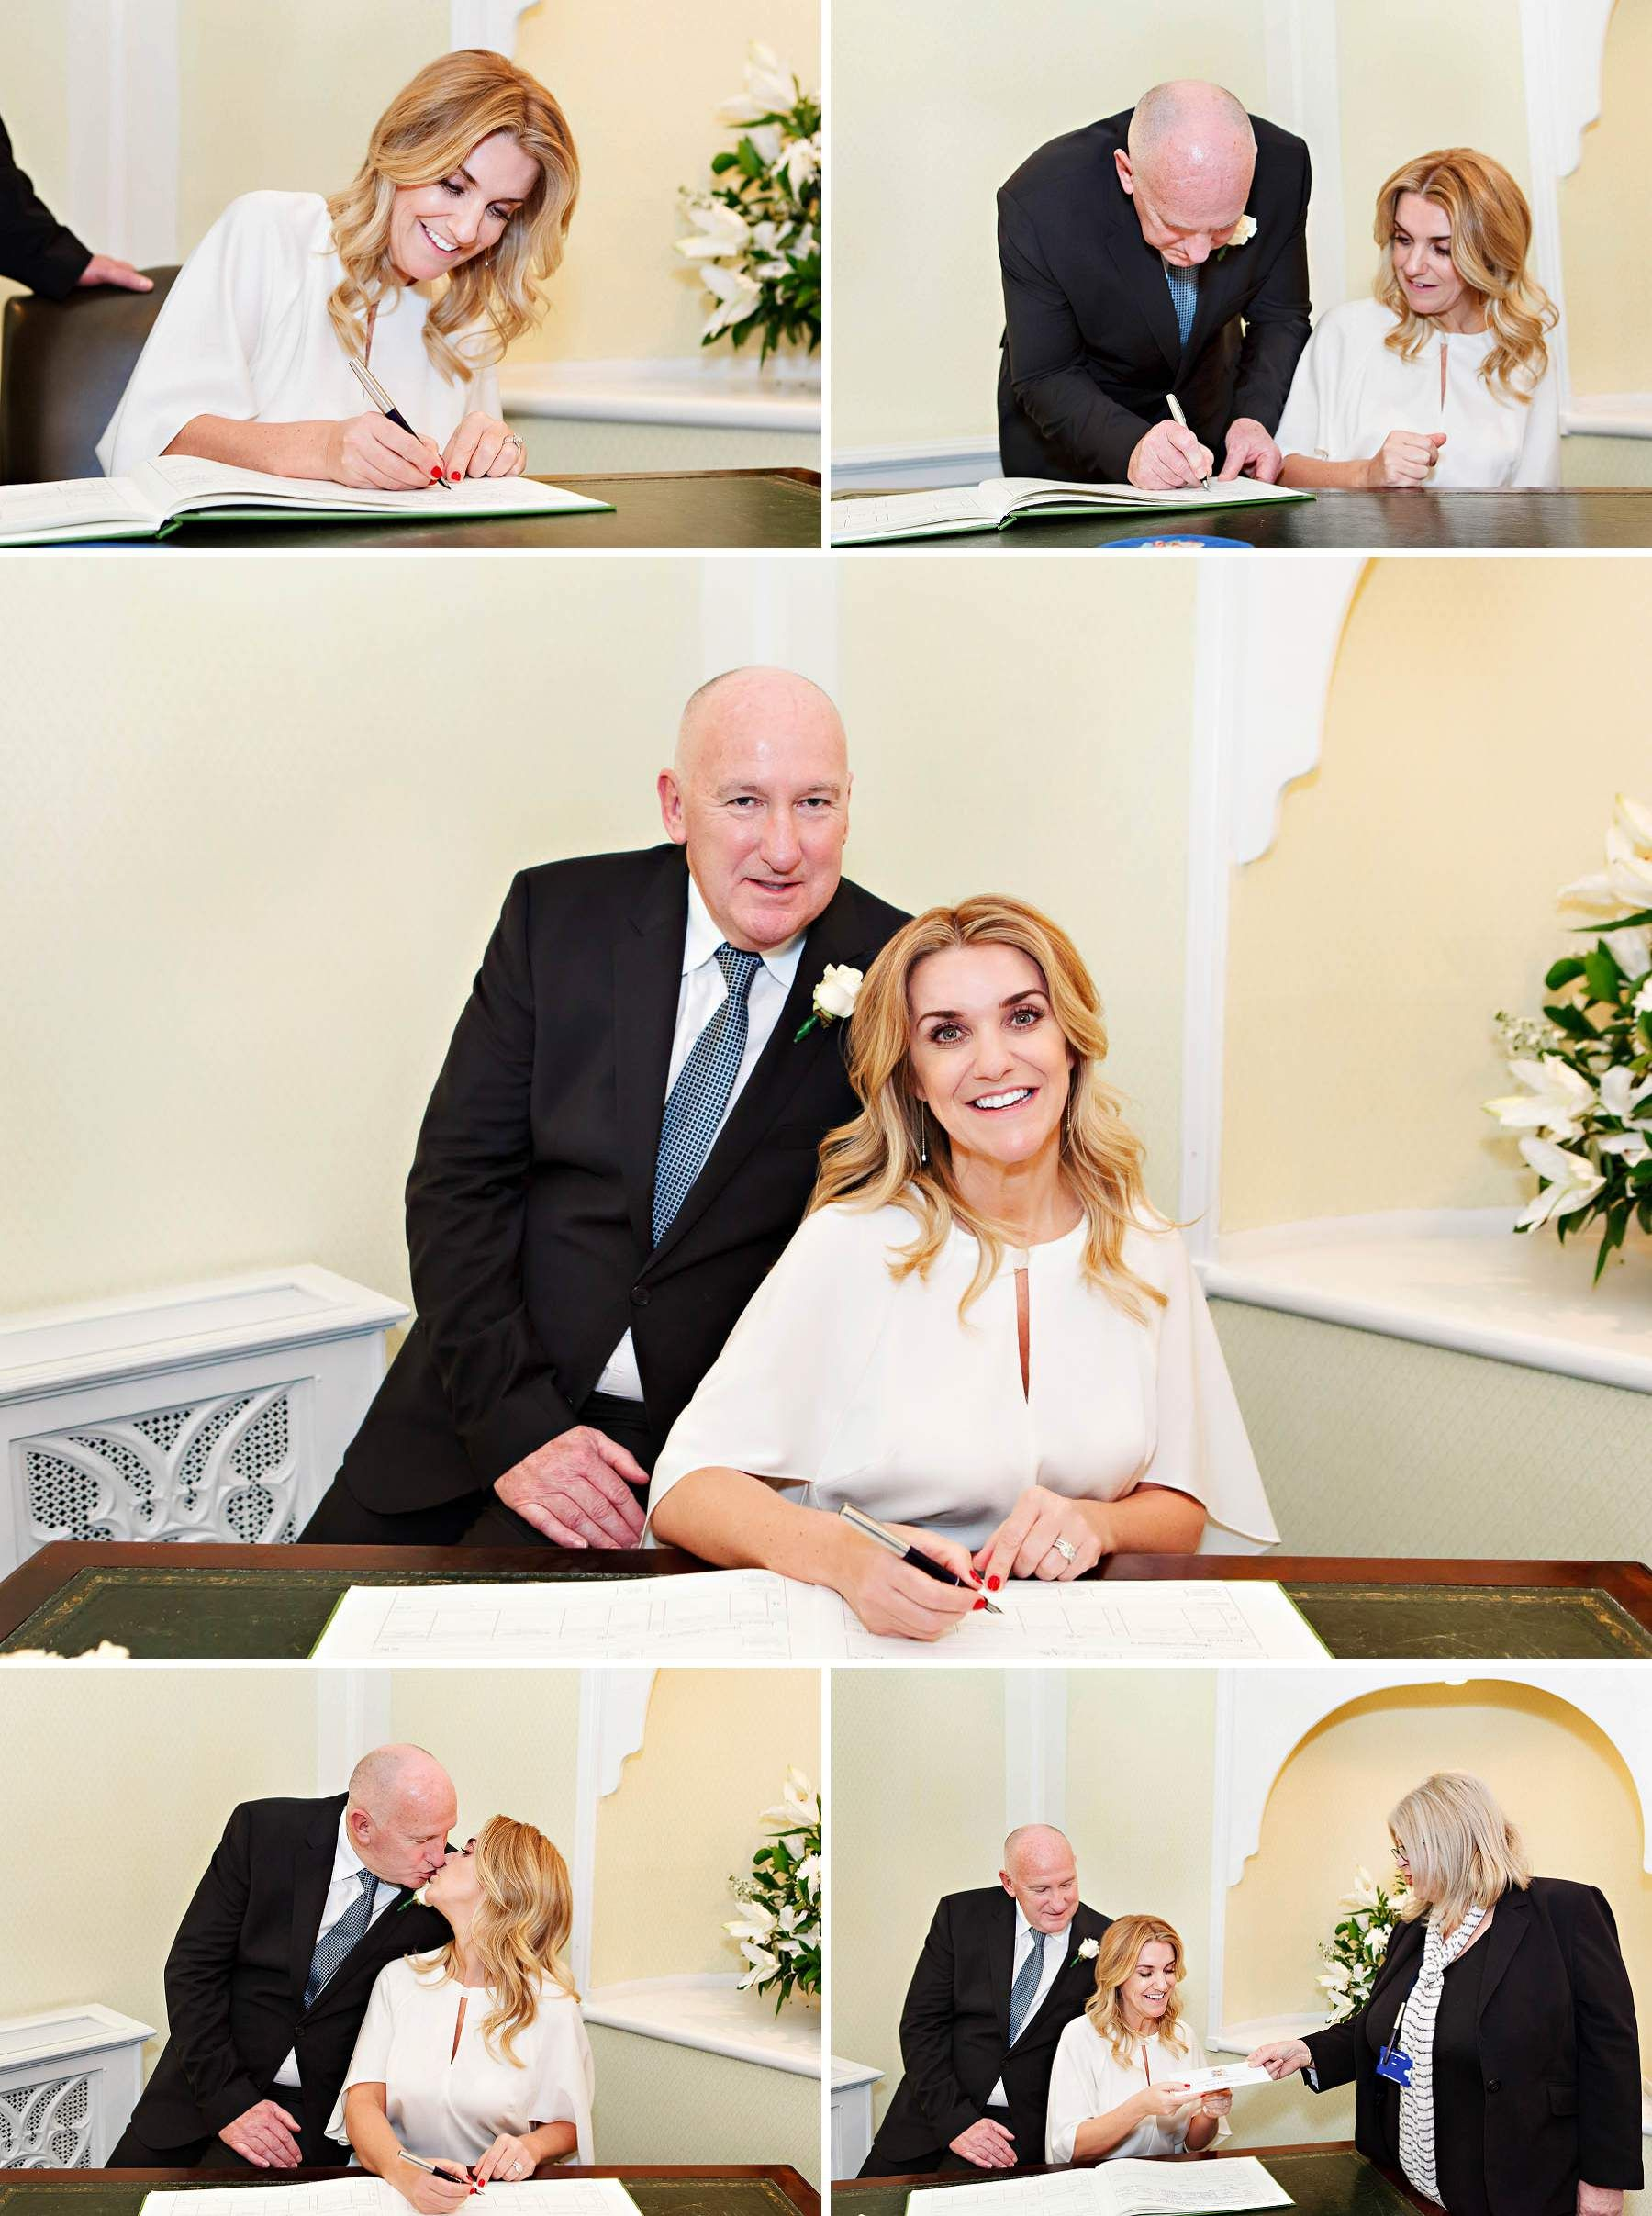 The Bride And Groom Sign Register During Their Civil Wedding Ceremony In Rossetti Room